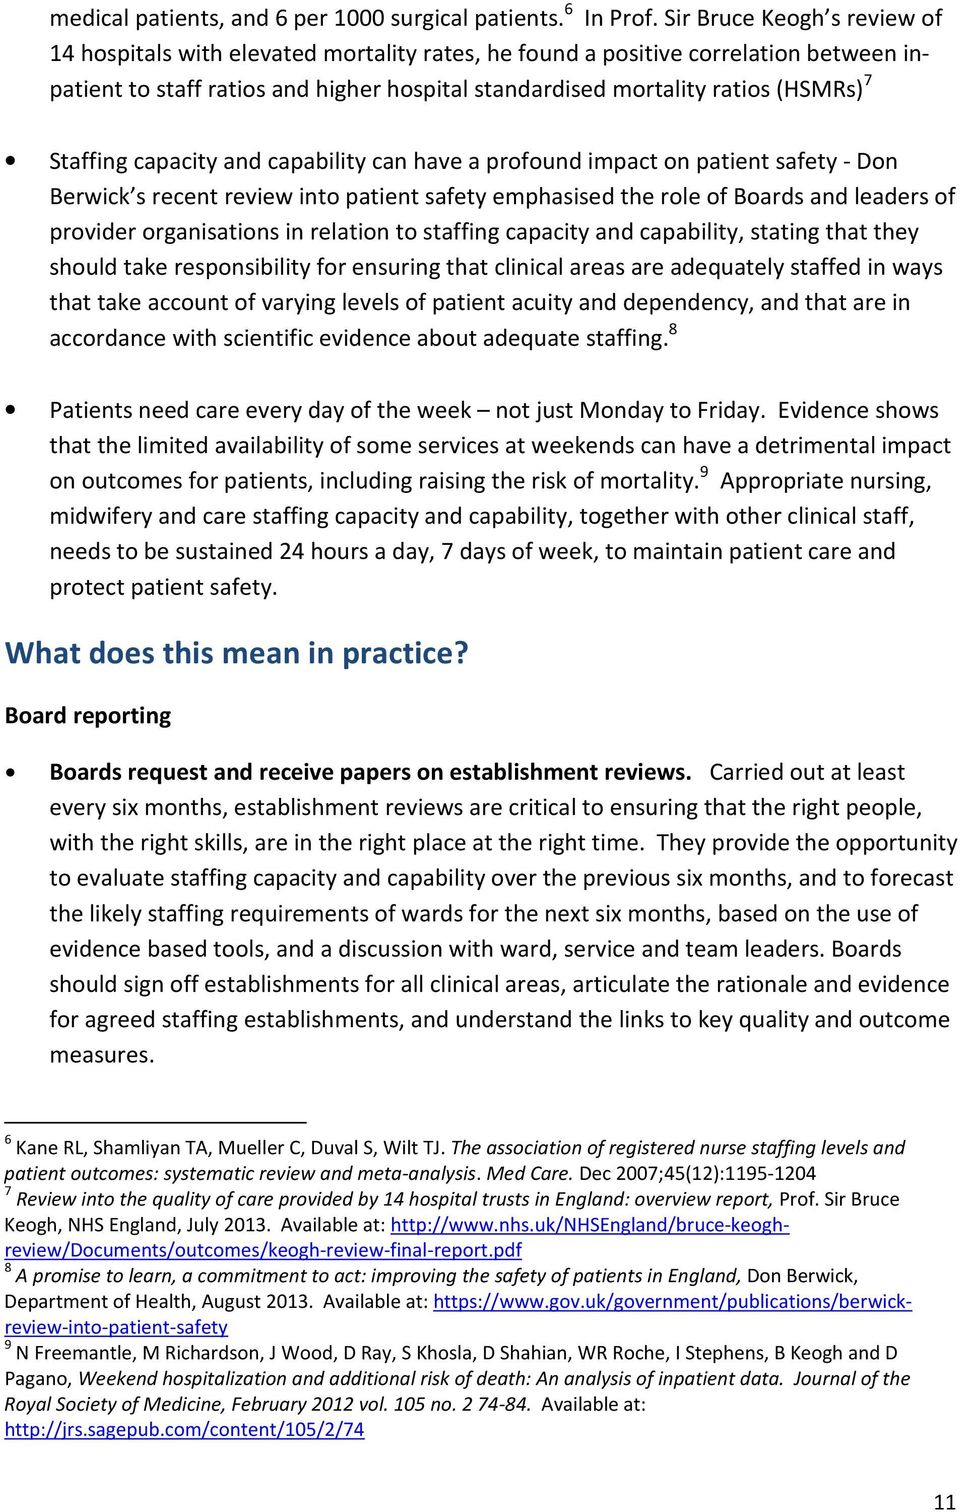 Staffing capacity and capability can have a profound impact on patient safety - Don Berwick s recent review into patient safety emphasised the role of Boards and leaders of provider organisations in